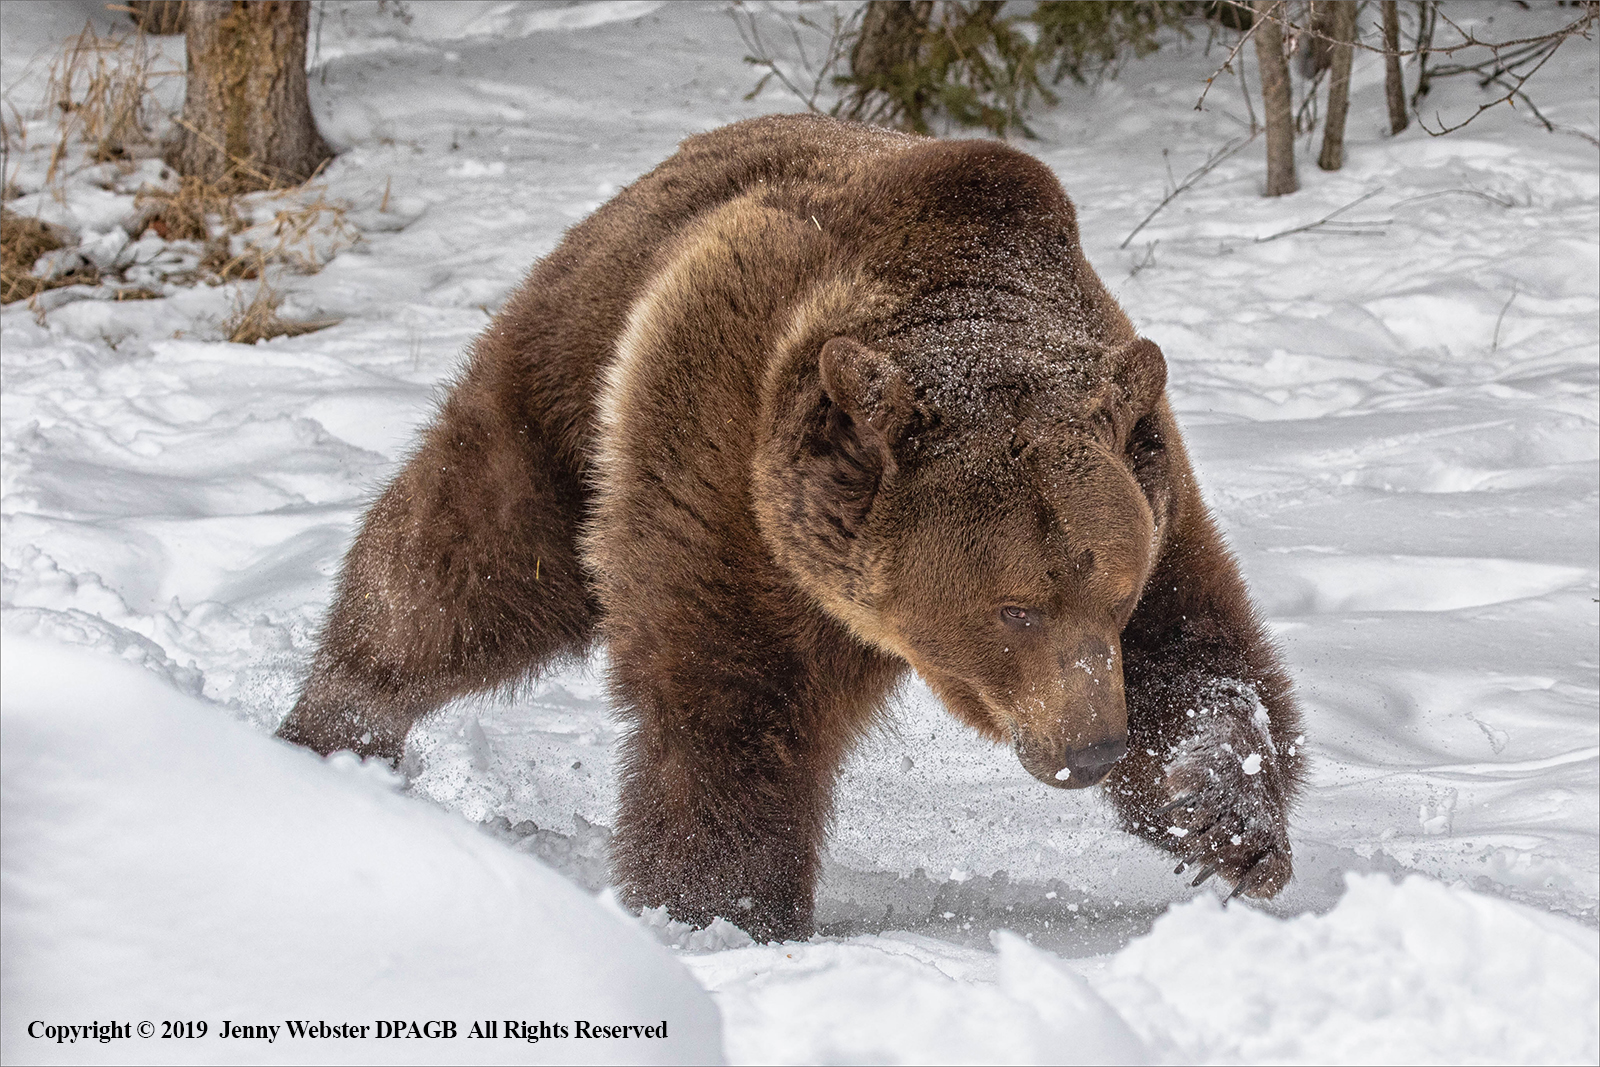 Male Grizzly Bear in the Snow by Jenny Webster